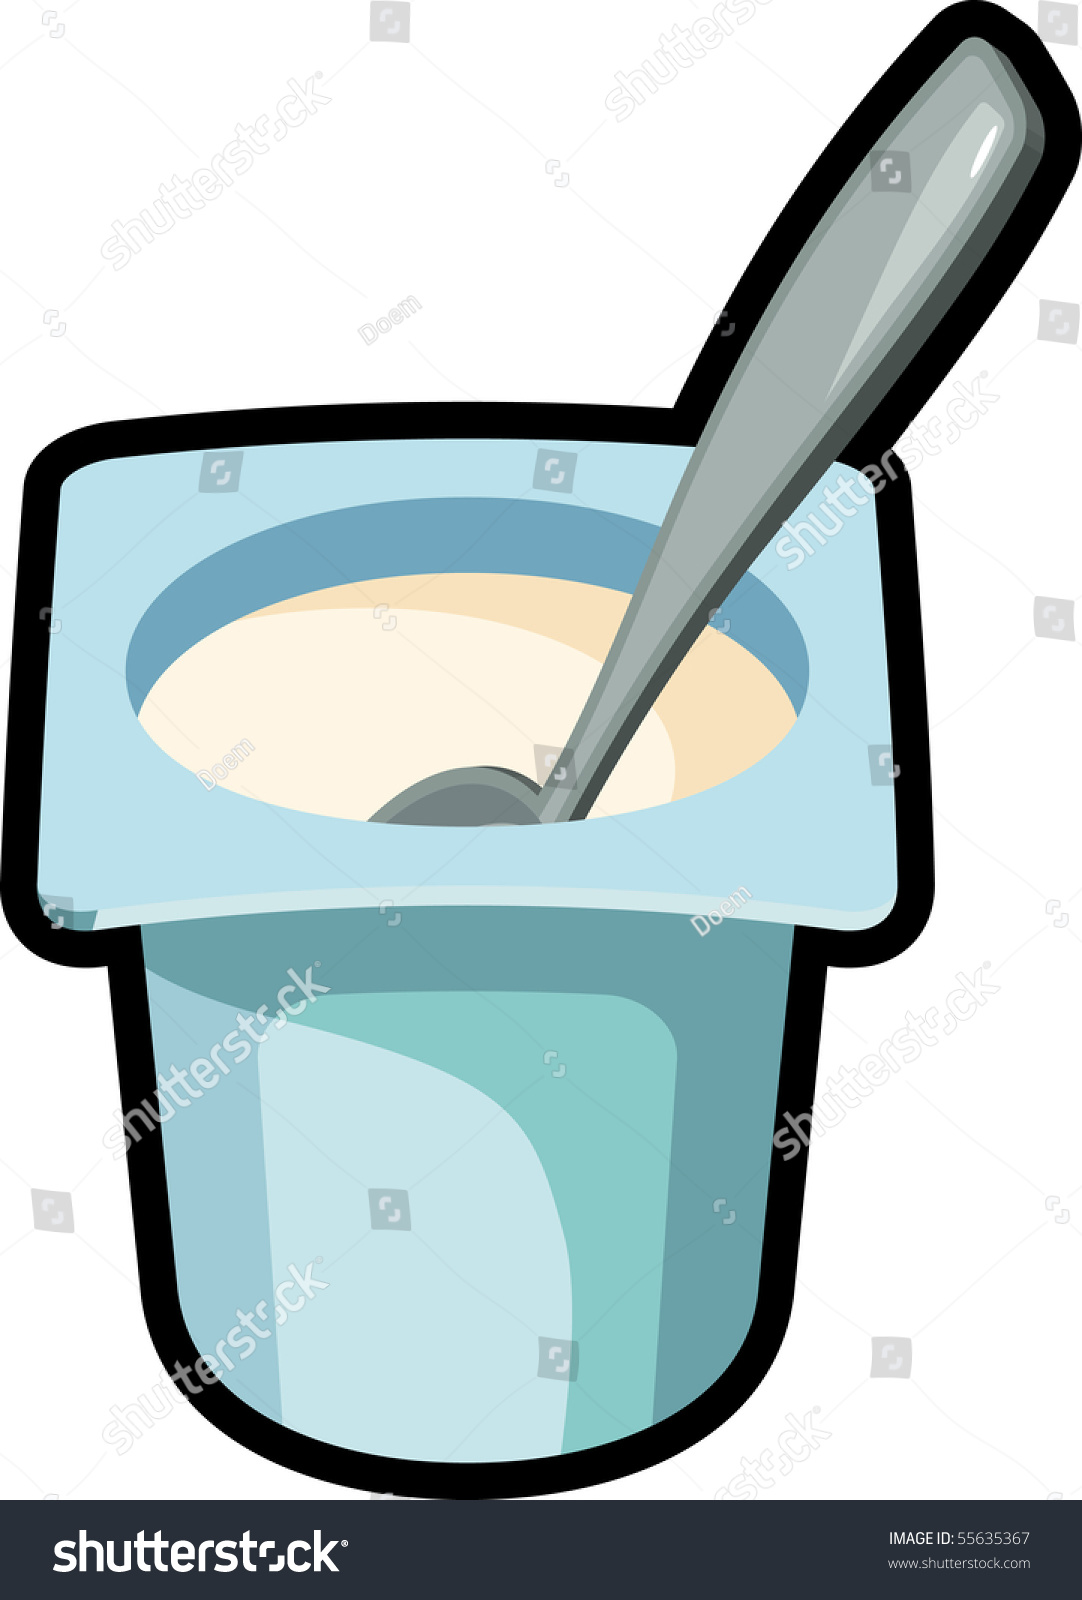 Yogurt Spoon Stock Vector Illustration 55635367 : Shutterstock